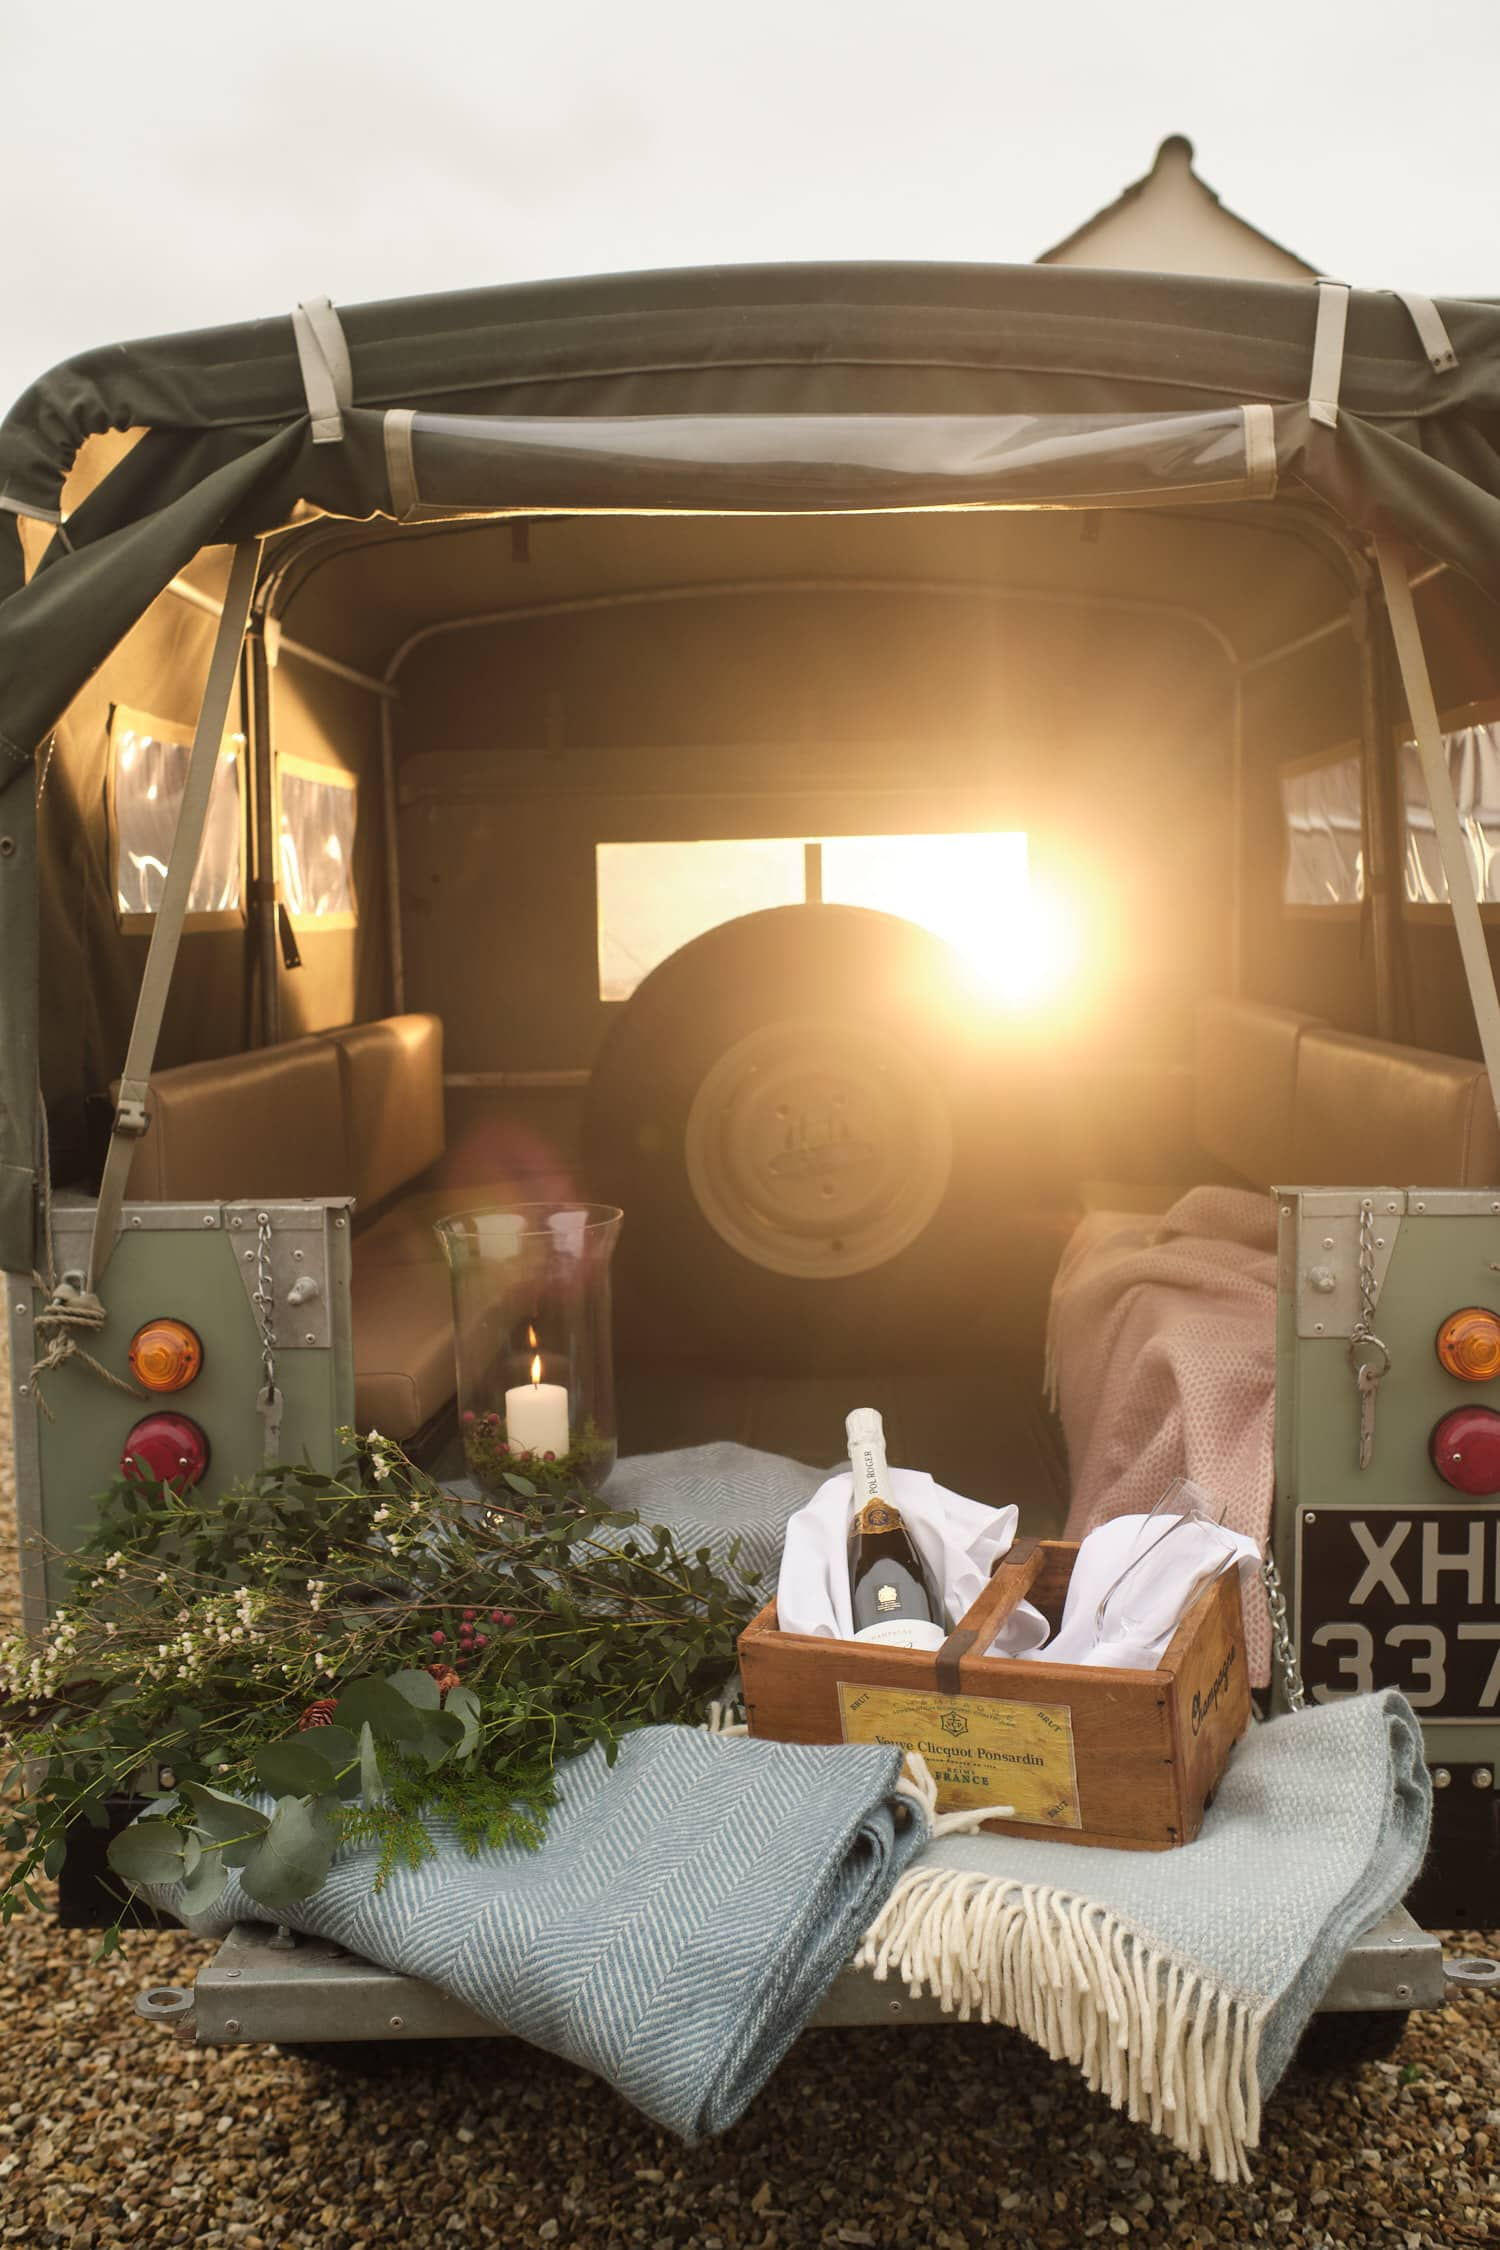 A Landrover with a romantic picnic in the backprepped for a wedding, an ideal way to travel to your minimony